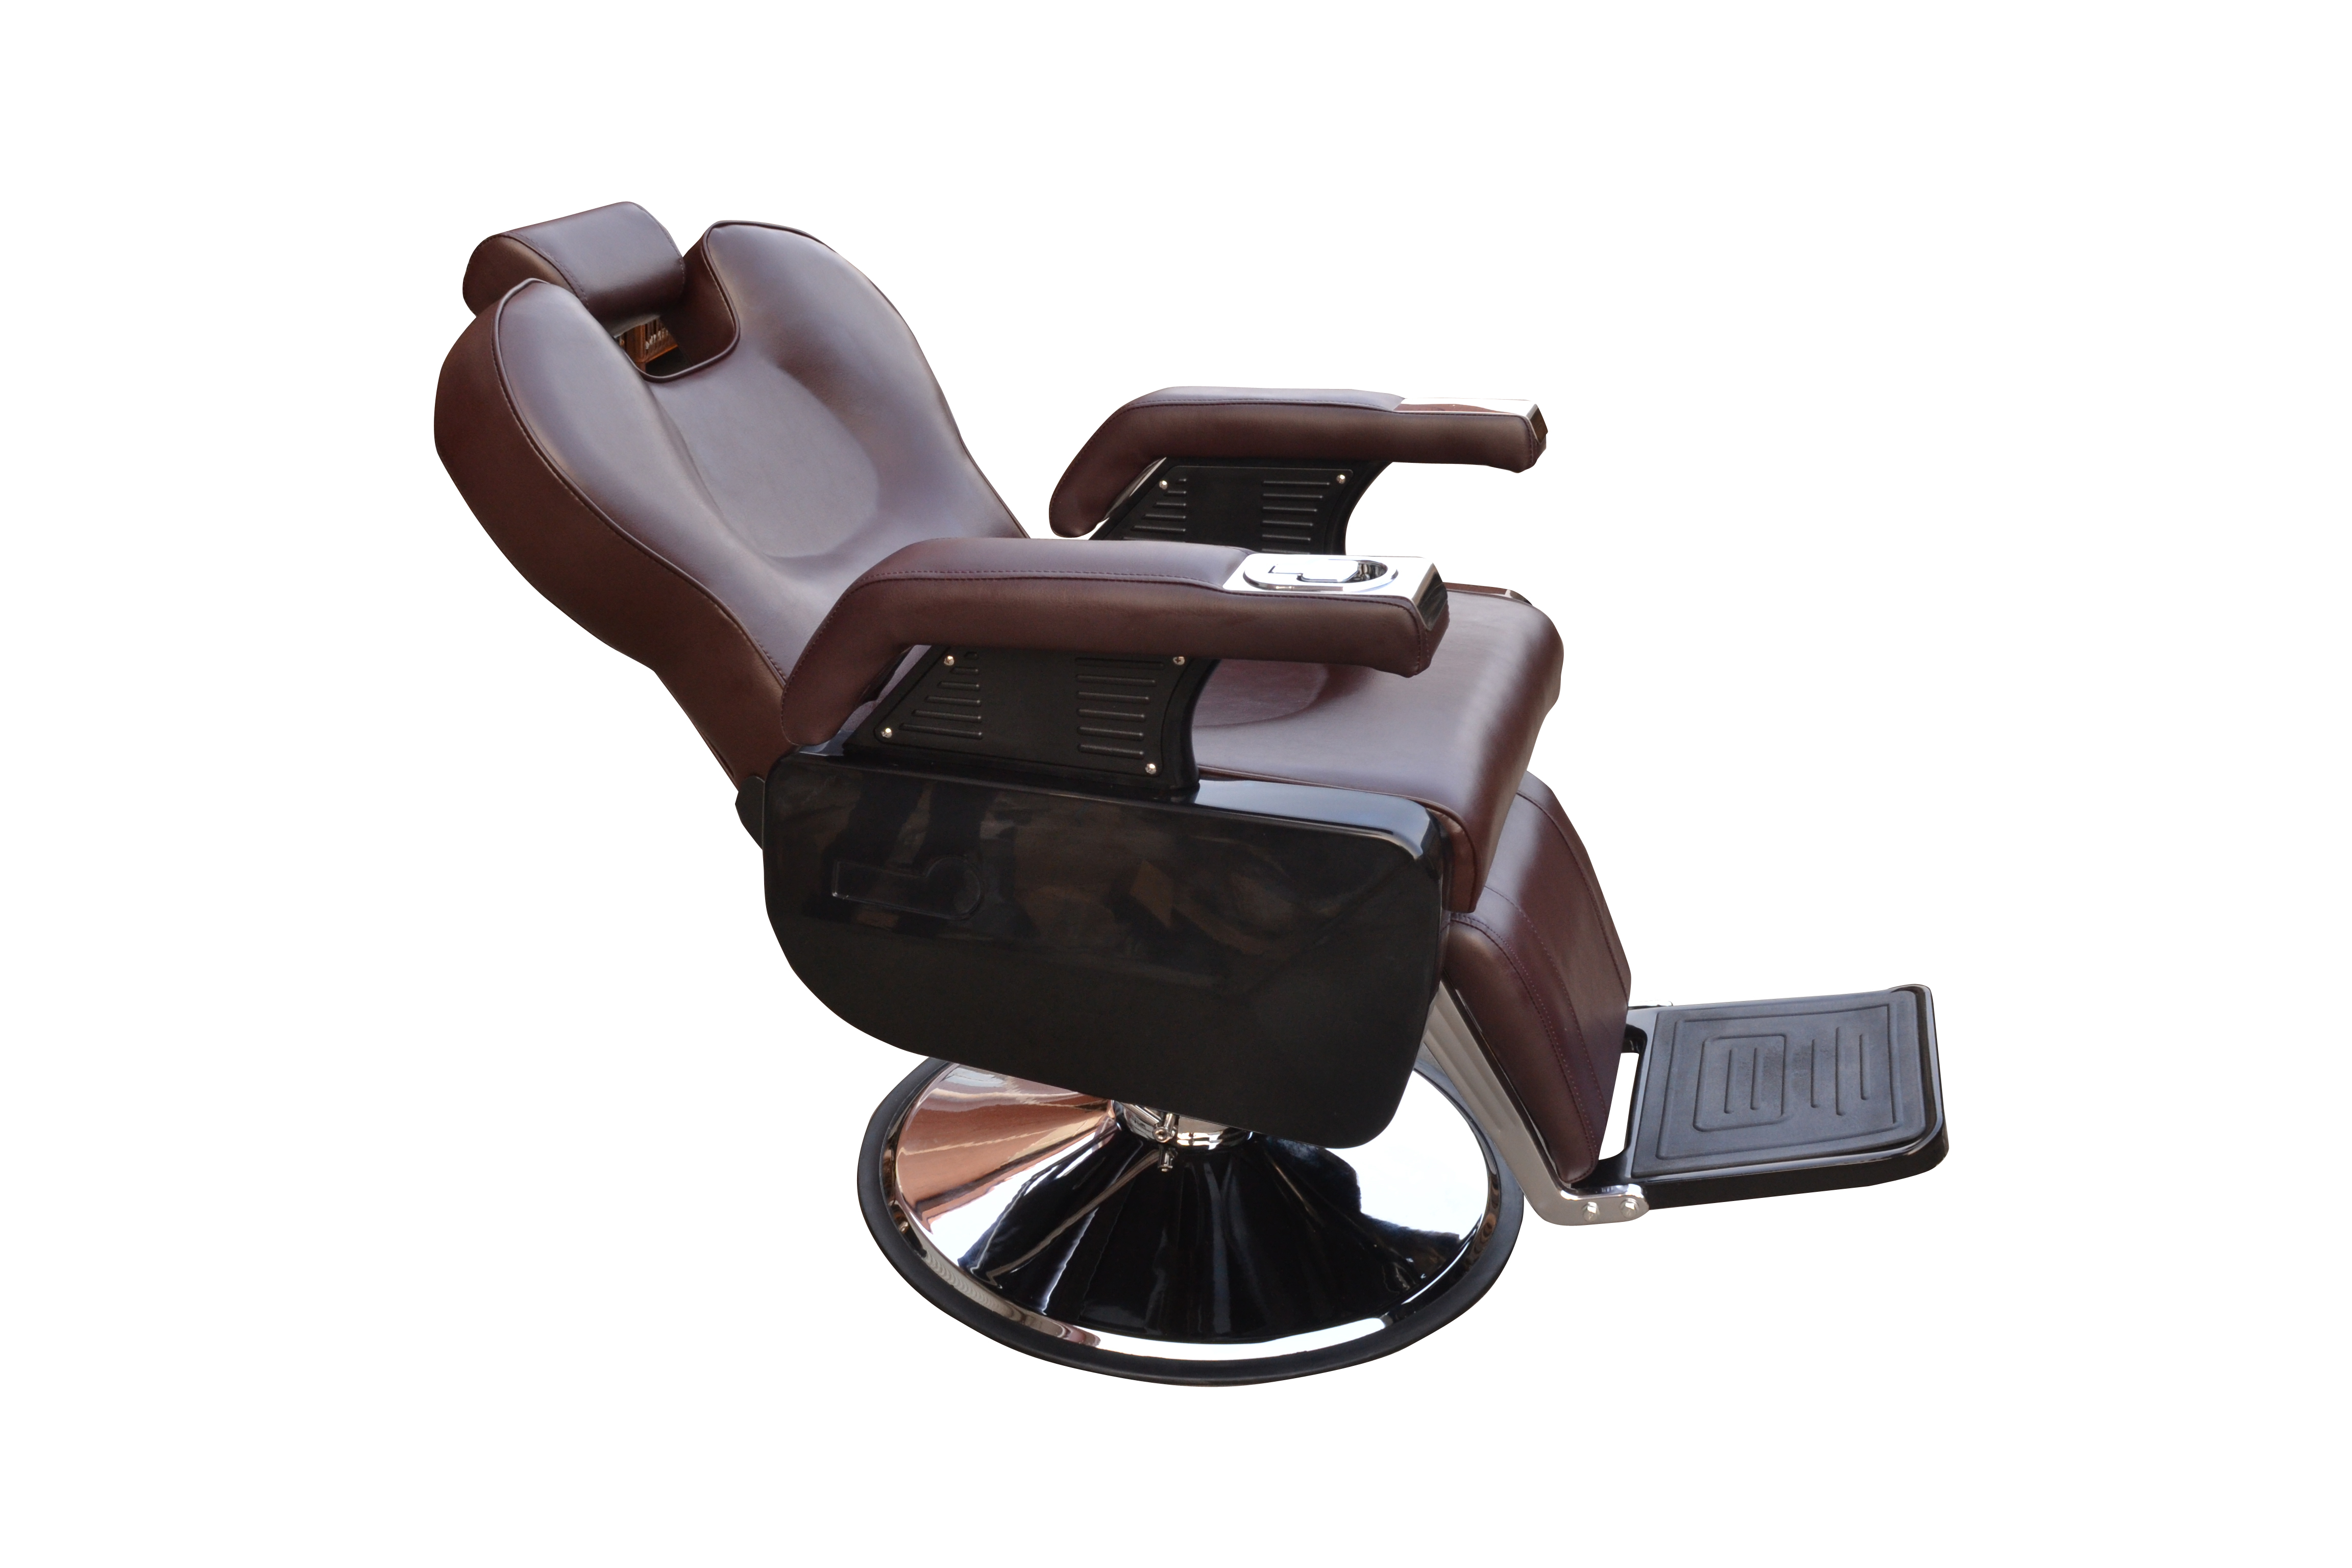 BarberPub All Purpose Hydraulic Recline Barber Chair Salon Beauty Spa 8702 Brown 14